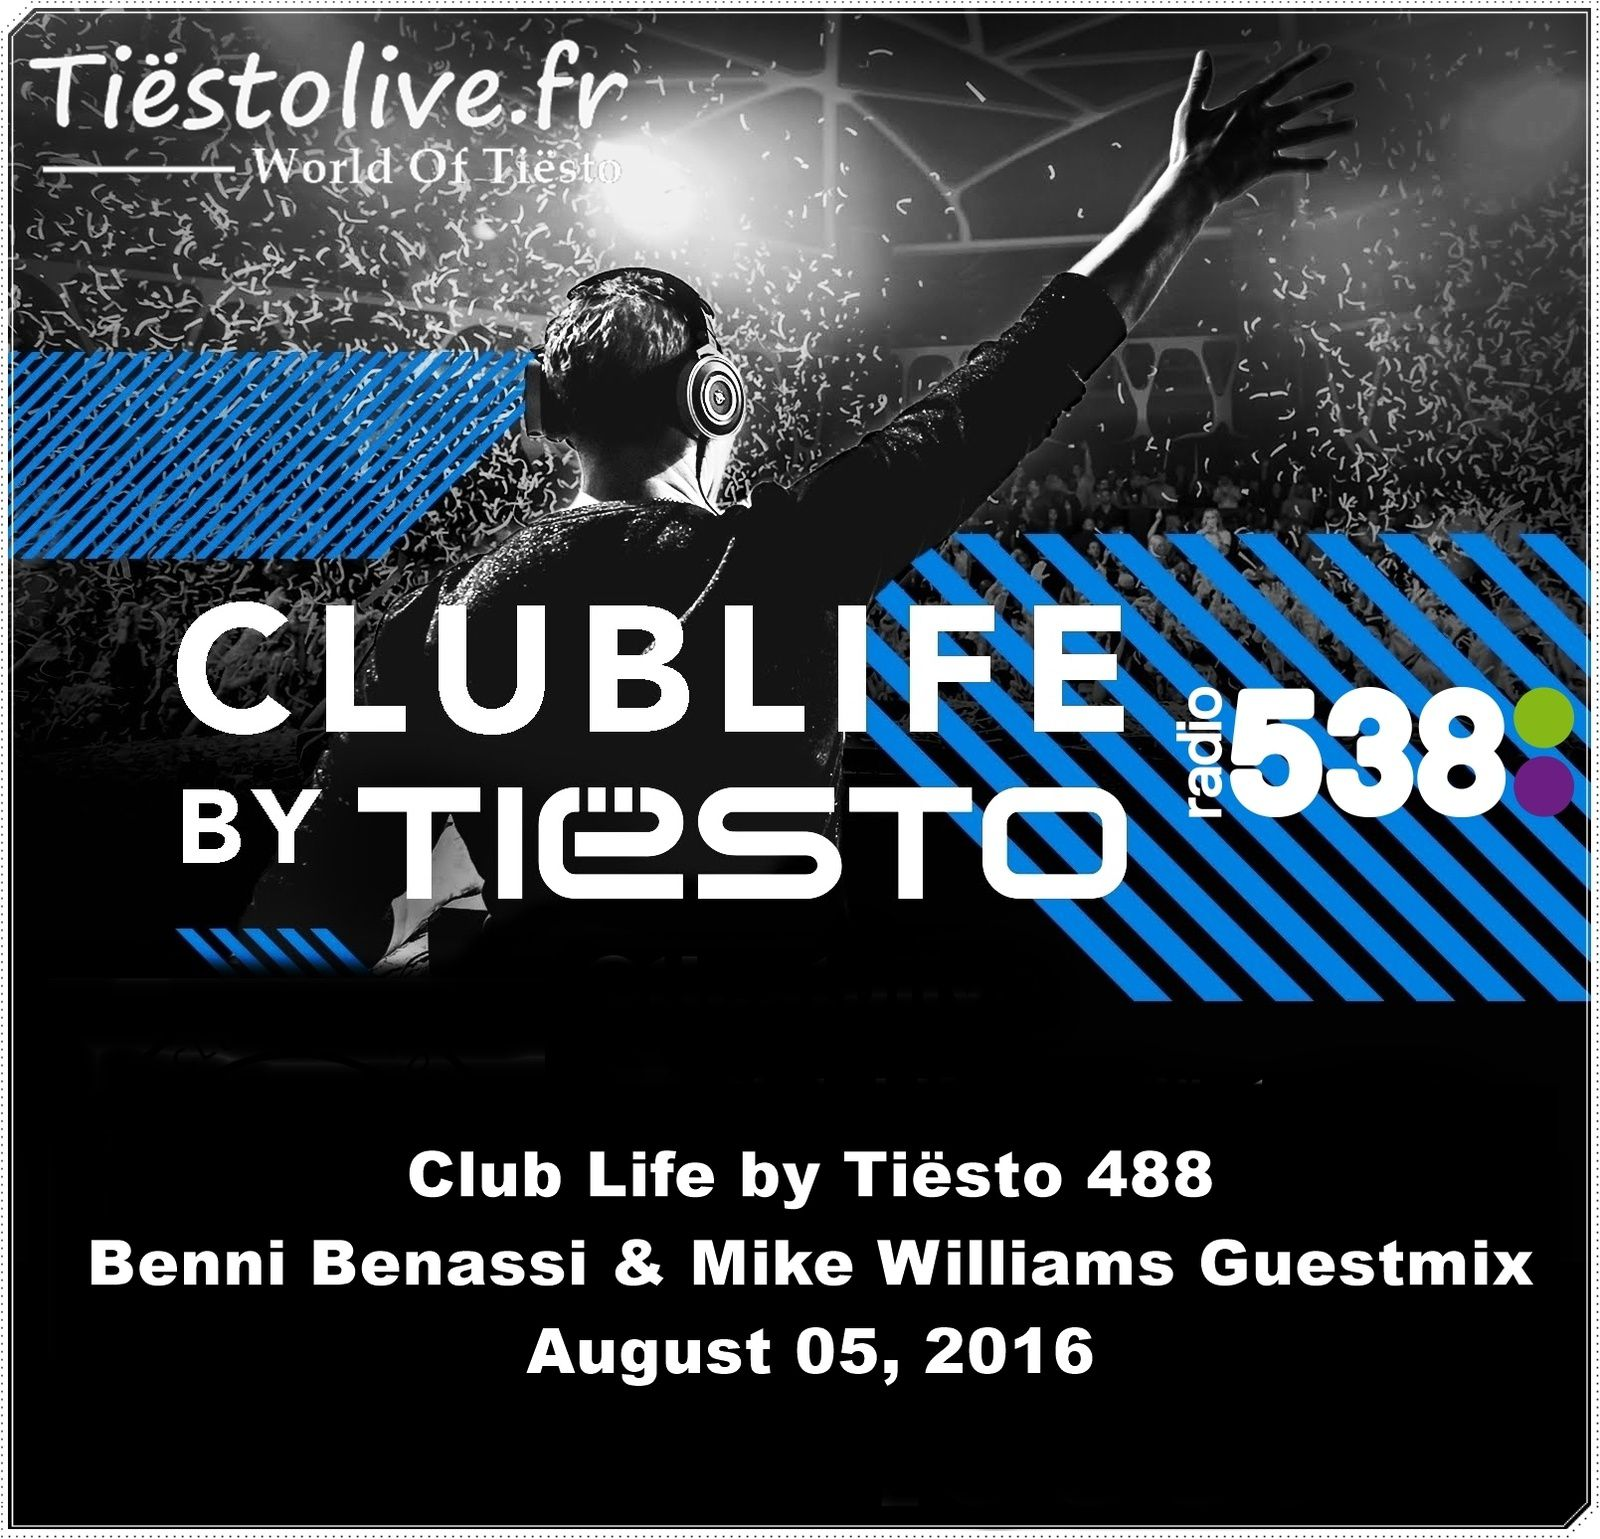 Club Life by Tiësto 488 - Benni Benassi &amp&#x3B; Mike Williams Guestmix - August 05, 2016